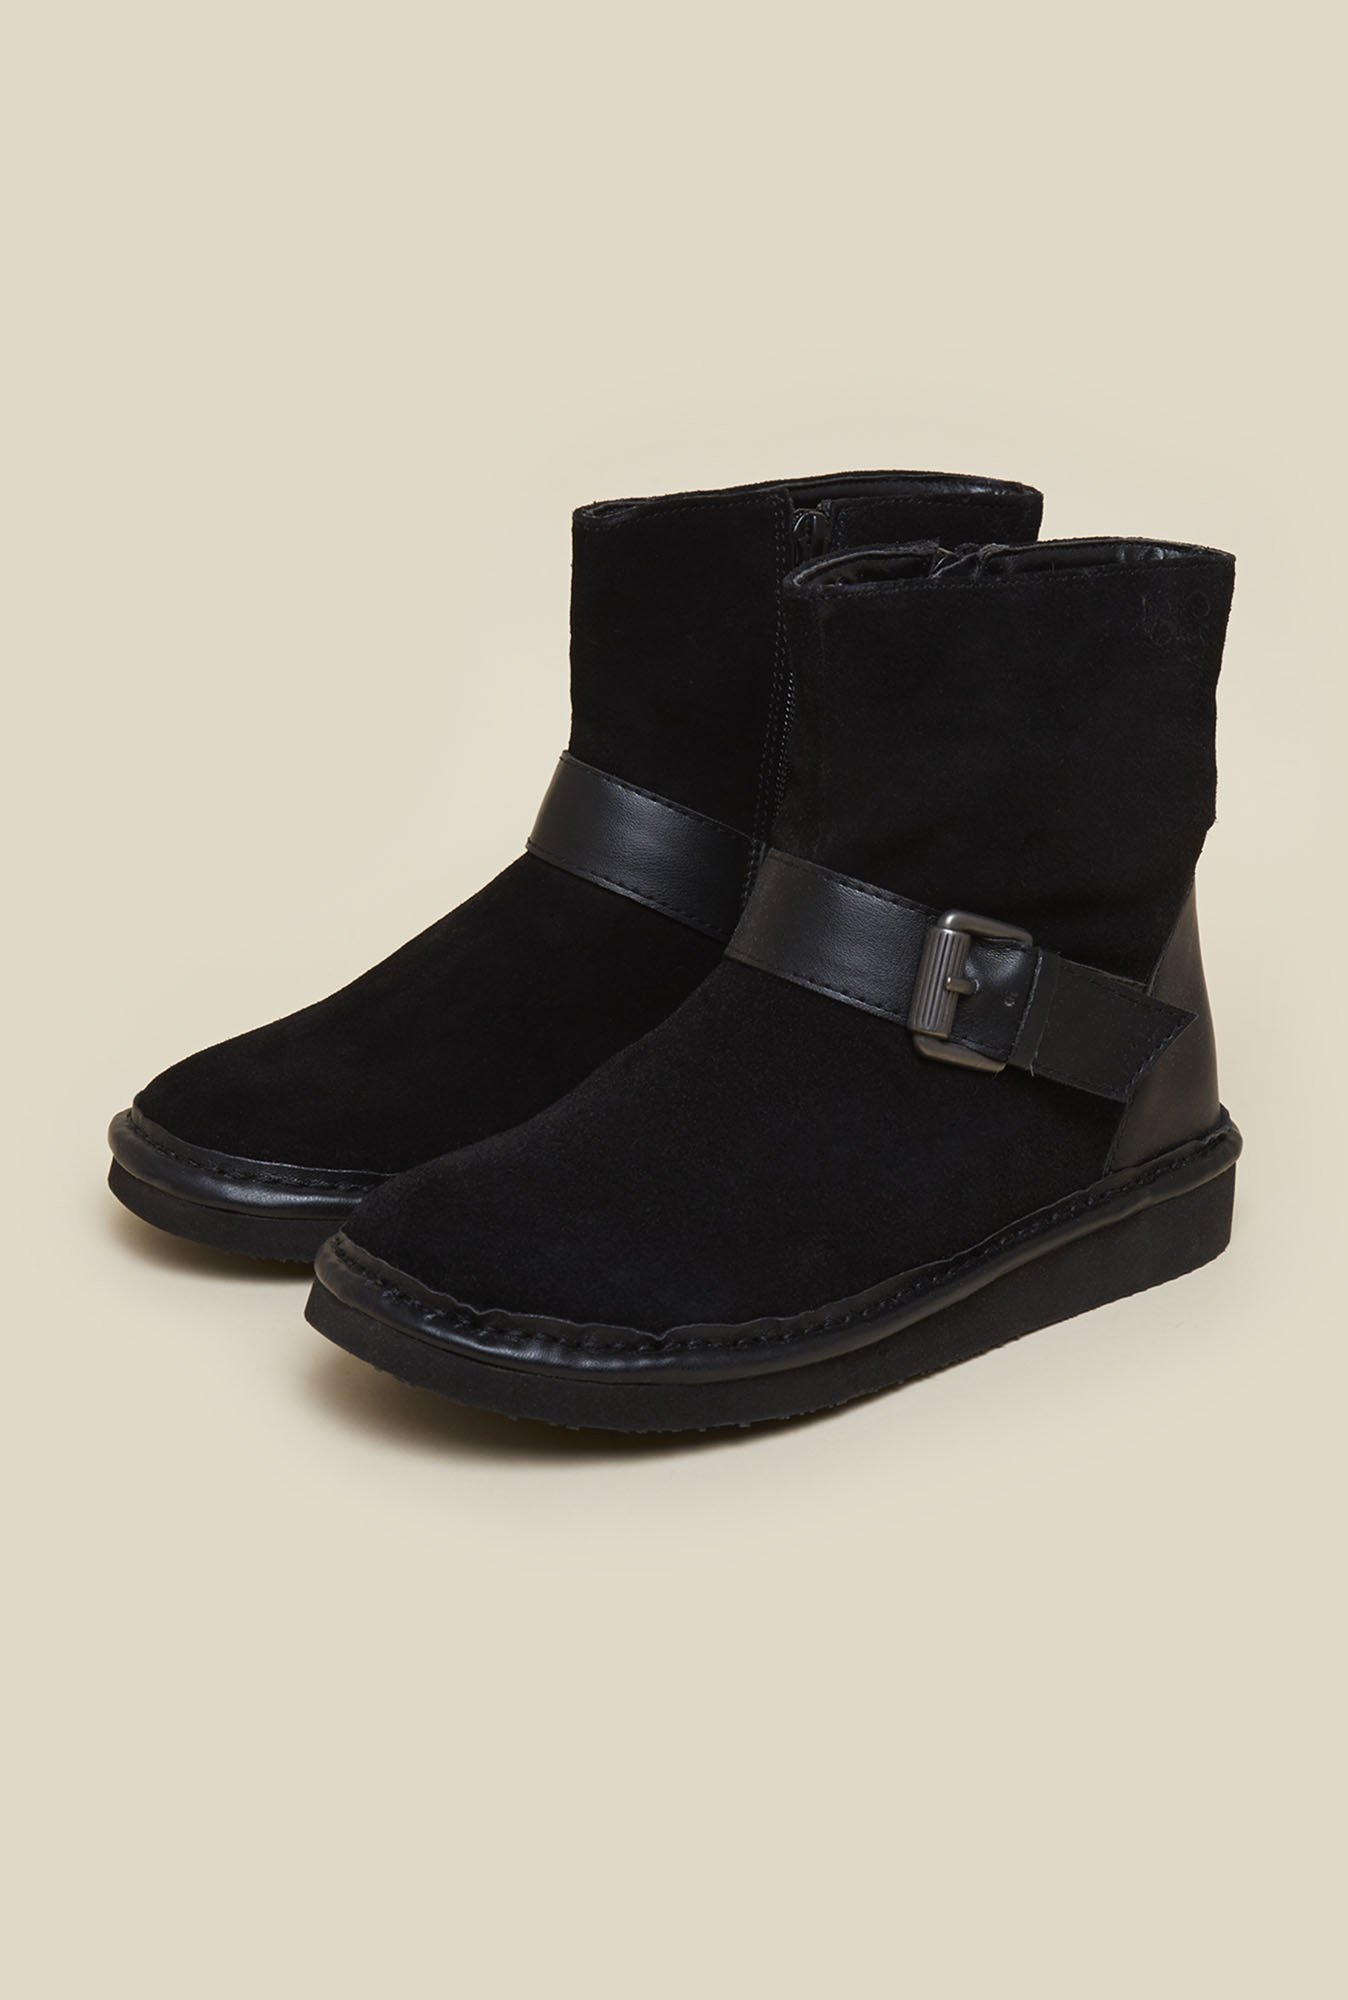 La Briza Black Ankle Length Snow Boots